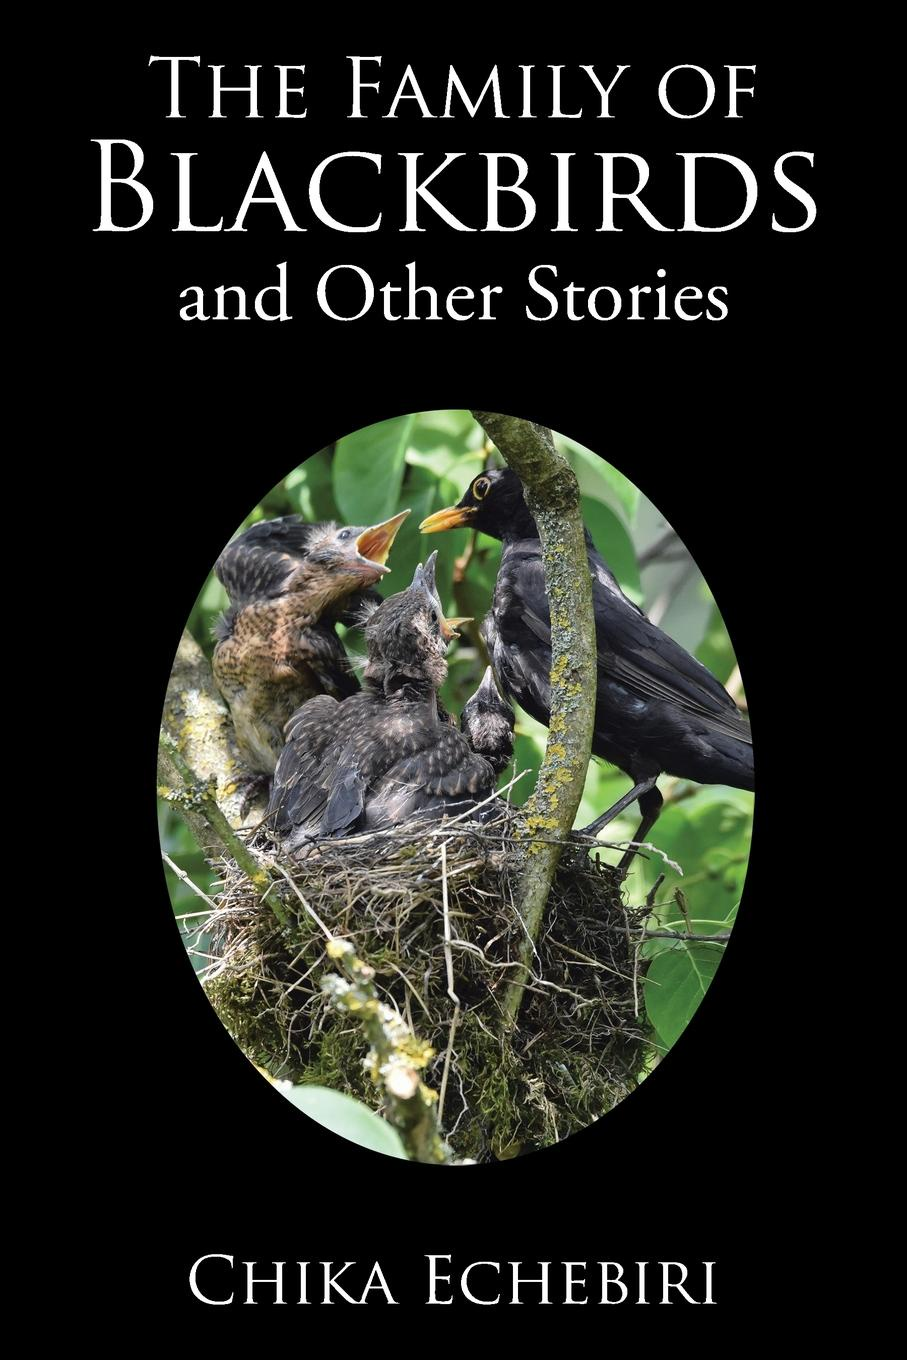 Chika Echebiri The Family of Blackbirds and Other Stories эдвард бульвер литтон the caxtons a family picture volume 03